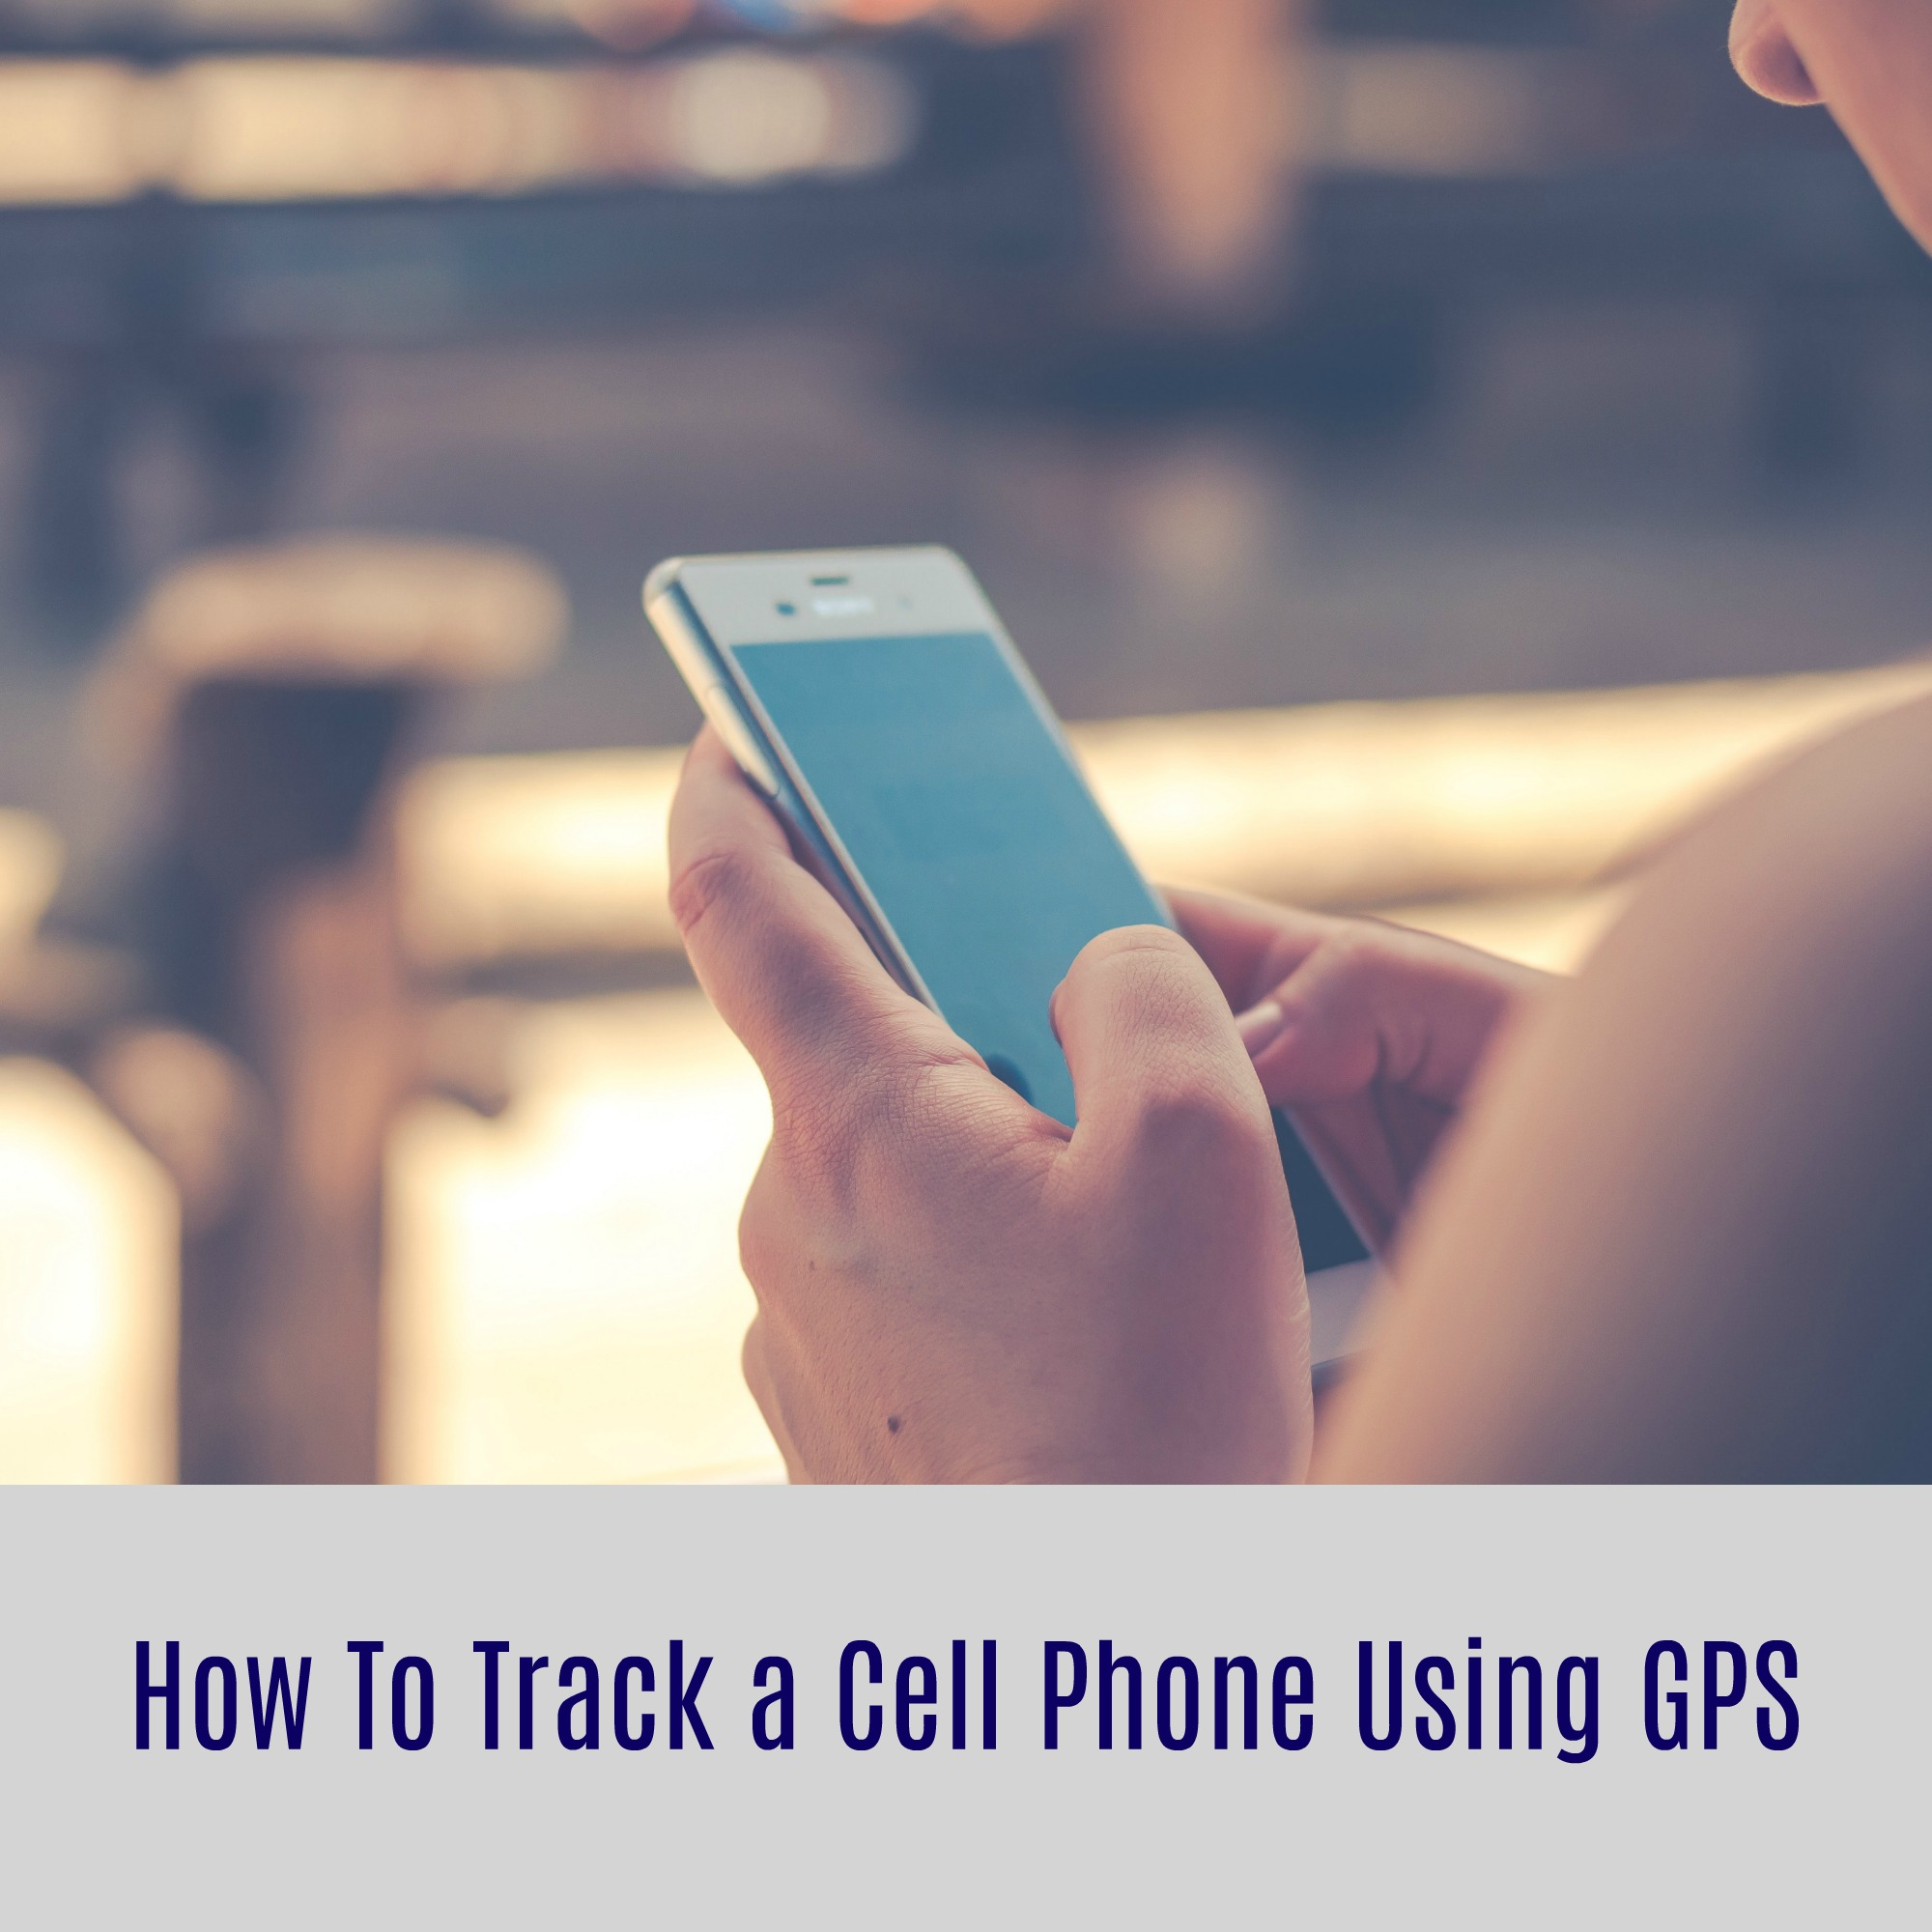 How To Track a Cell Phone Using GPS